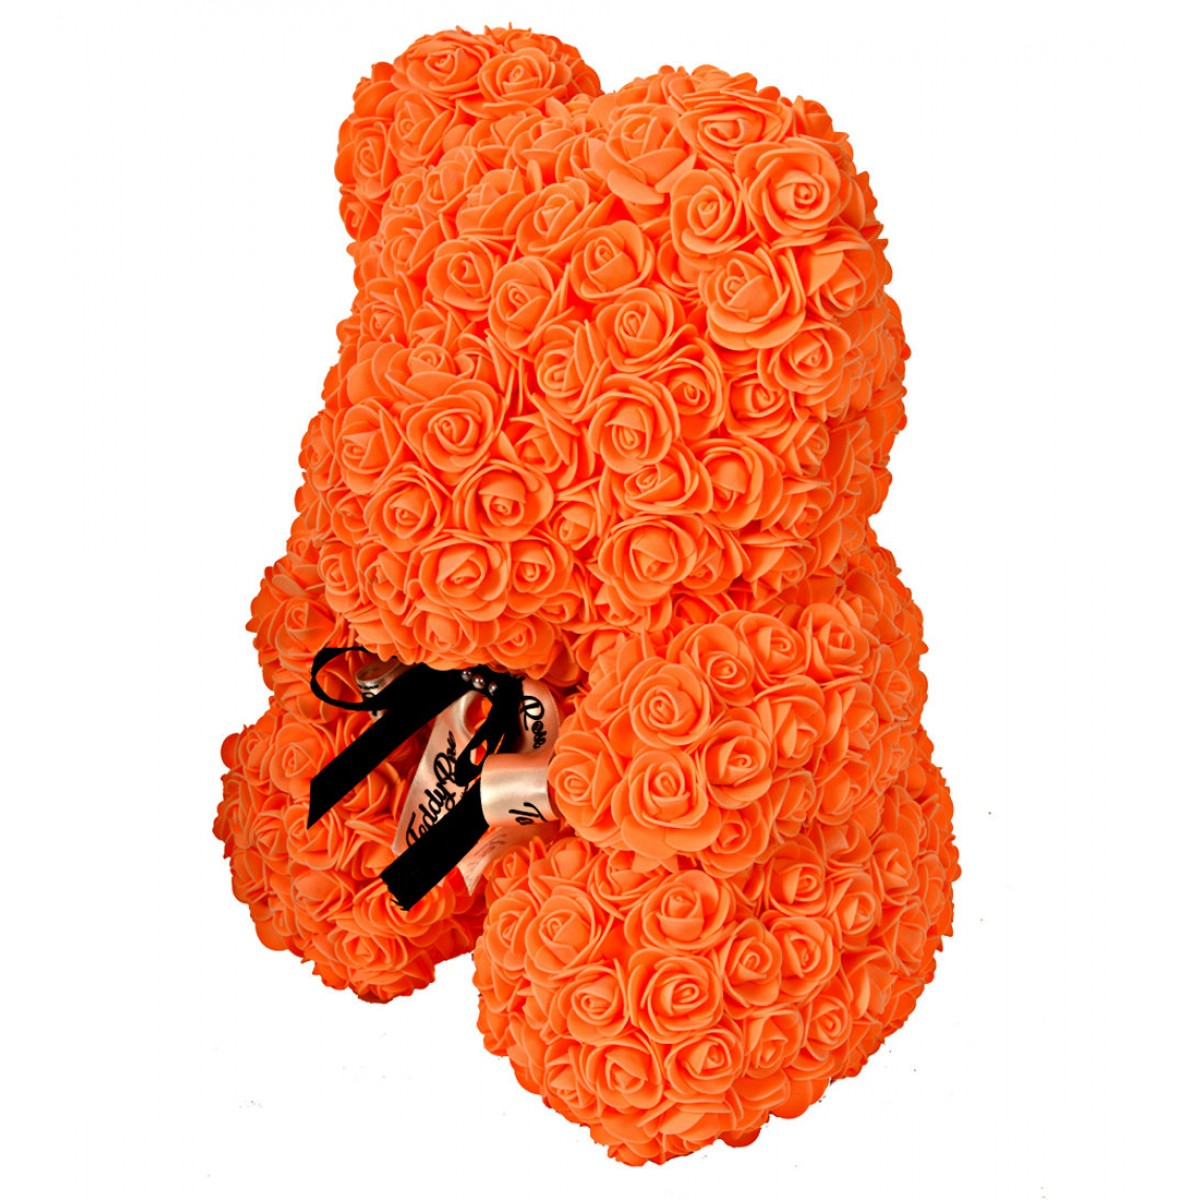 Teddy Rose Tangerine Orange Limited Edition (портокал) - мече от рози